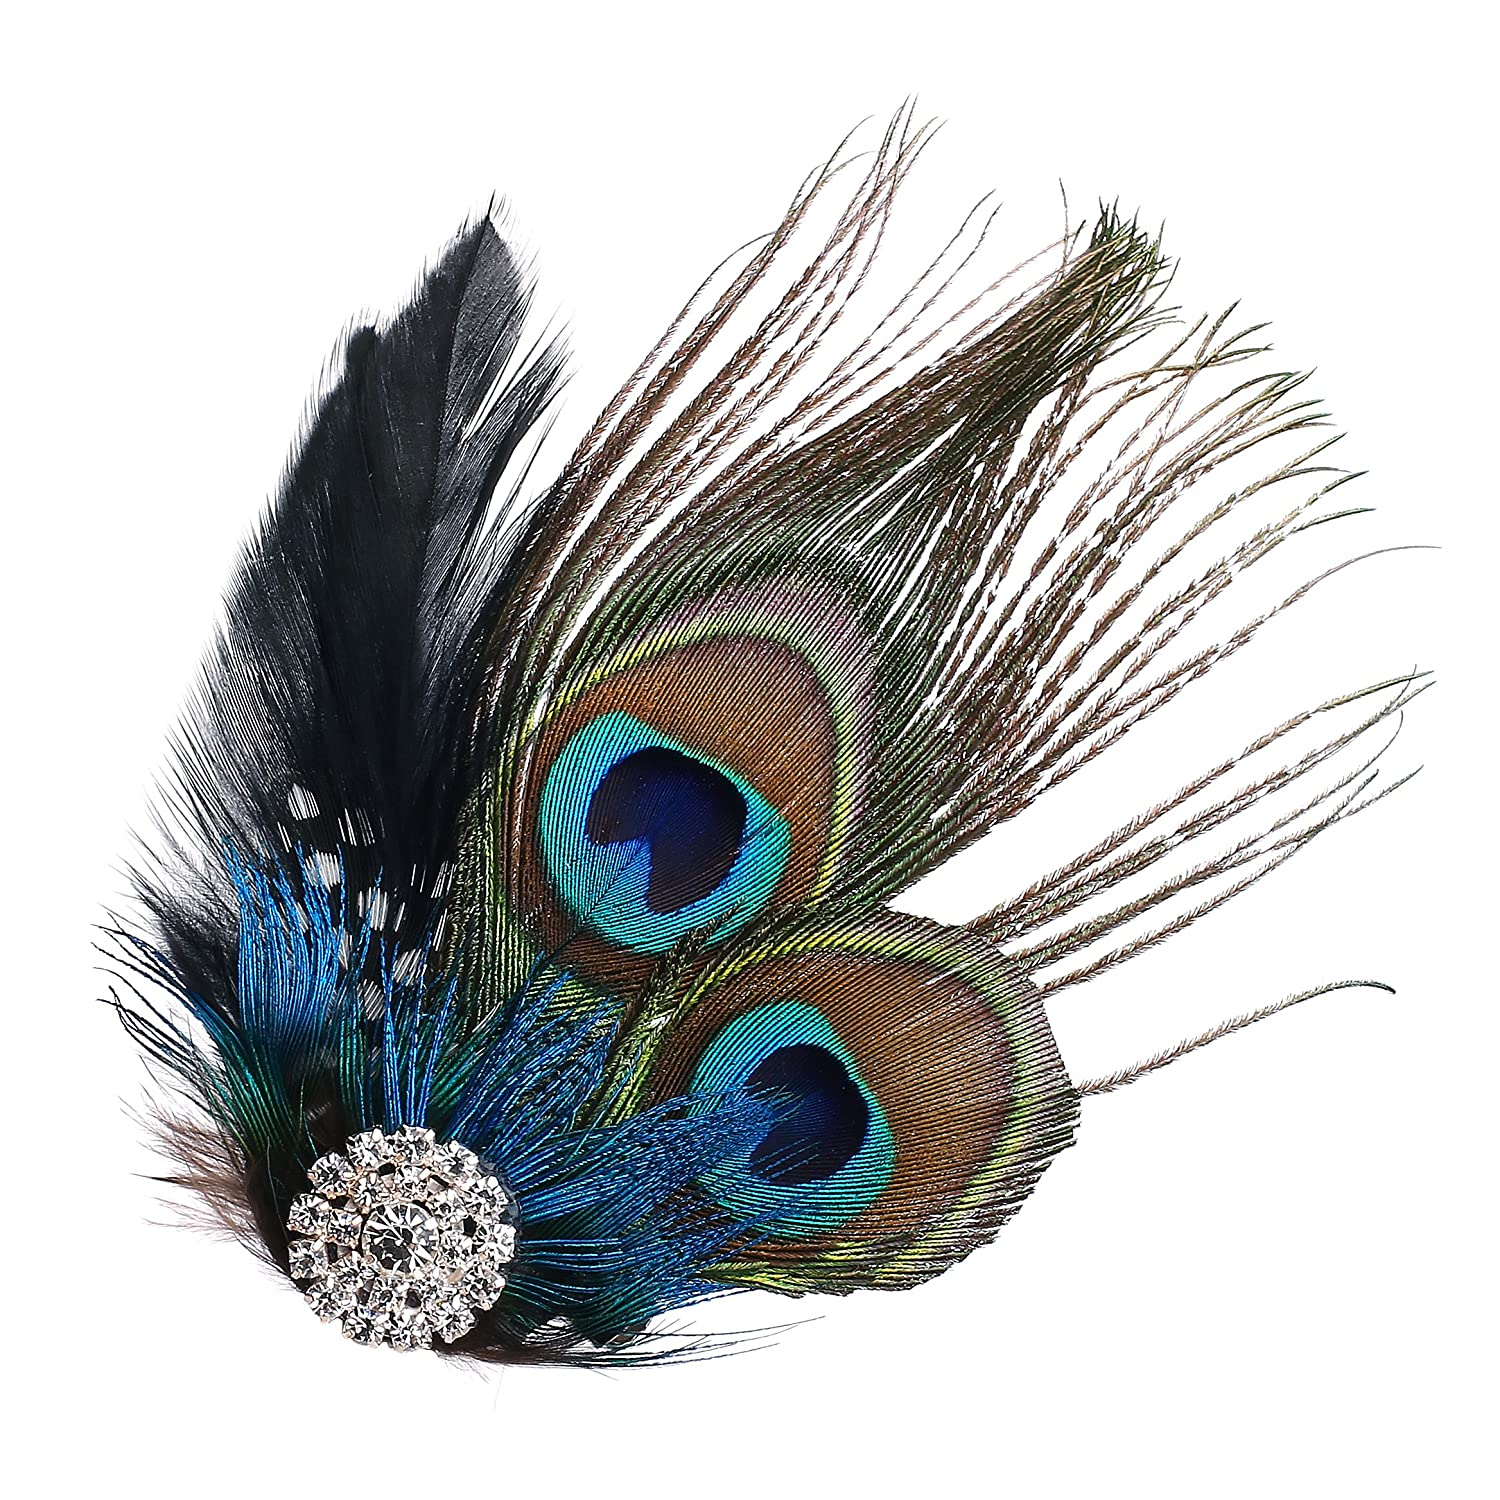 ArtiDeco 1920s Headpiece Crystal Vintage 1920s Flapper Peacock Feather Headband Great Gatsby Costume Accessories Roaring 20's Accessories Ar-Headband013-Peacock1